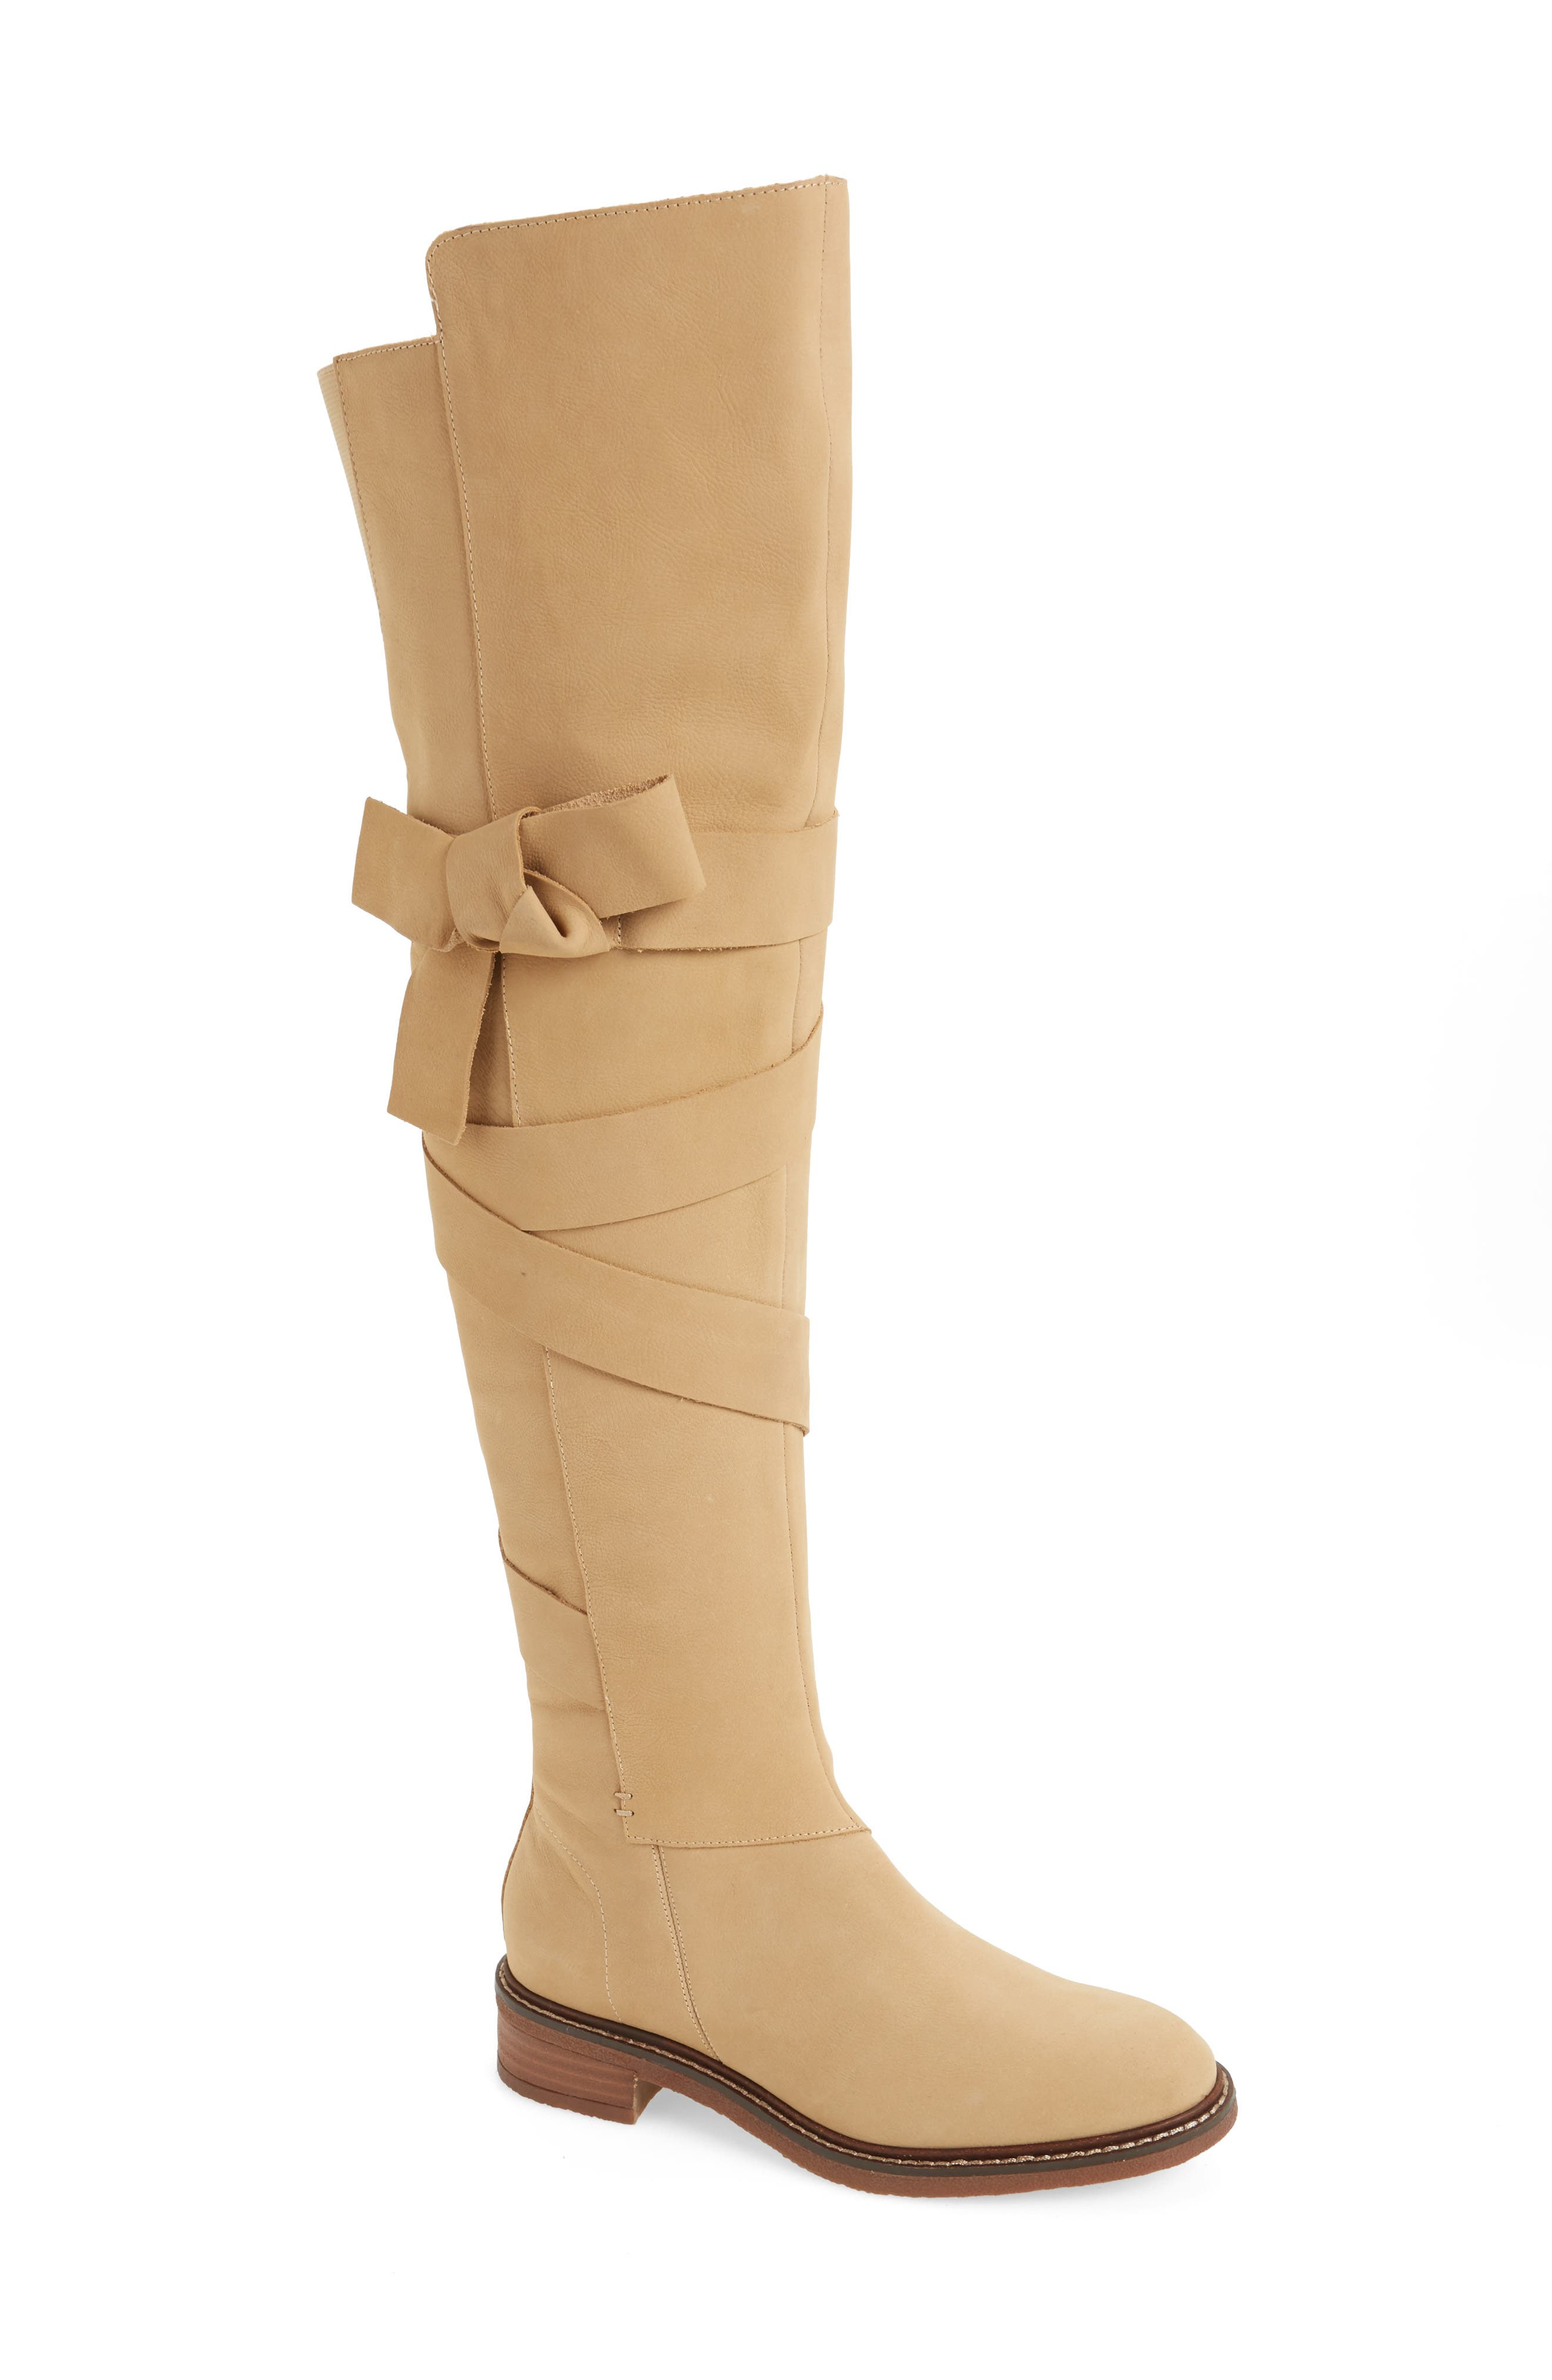 Colby Over the Knee Boot,                             Main thumbnail 1, color,                             Ginger